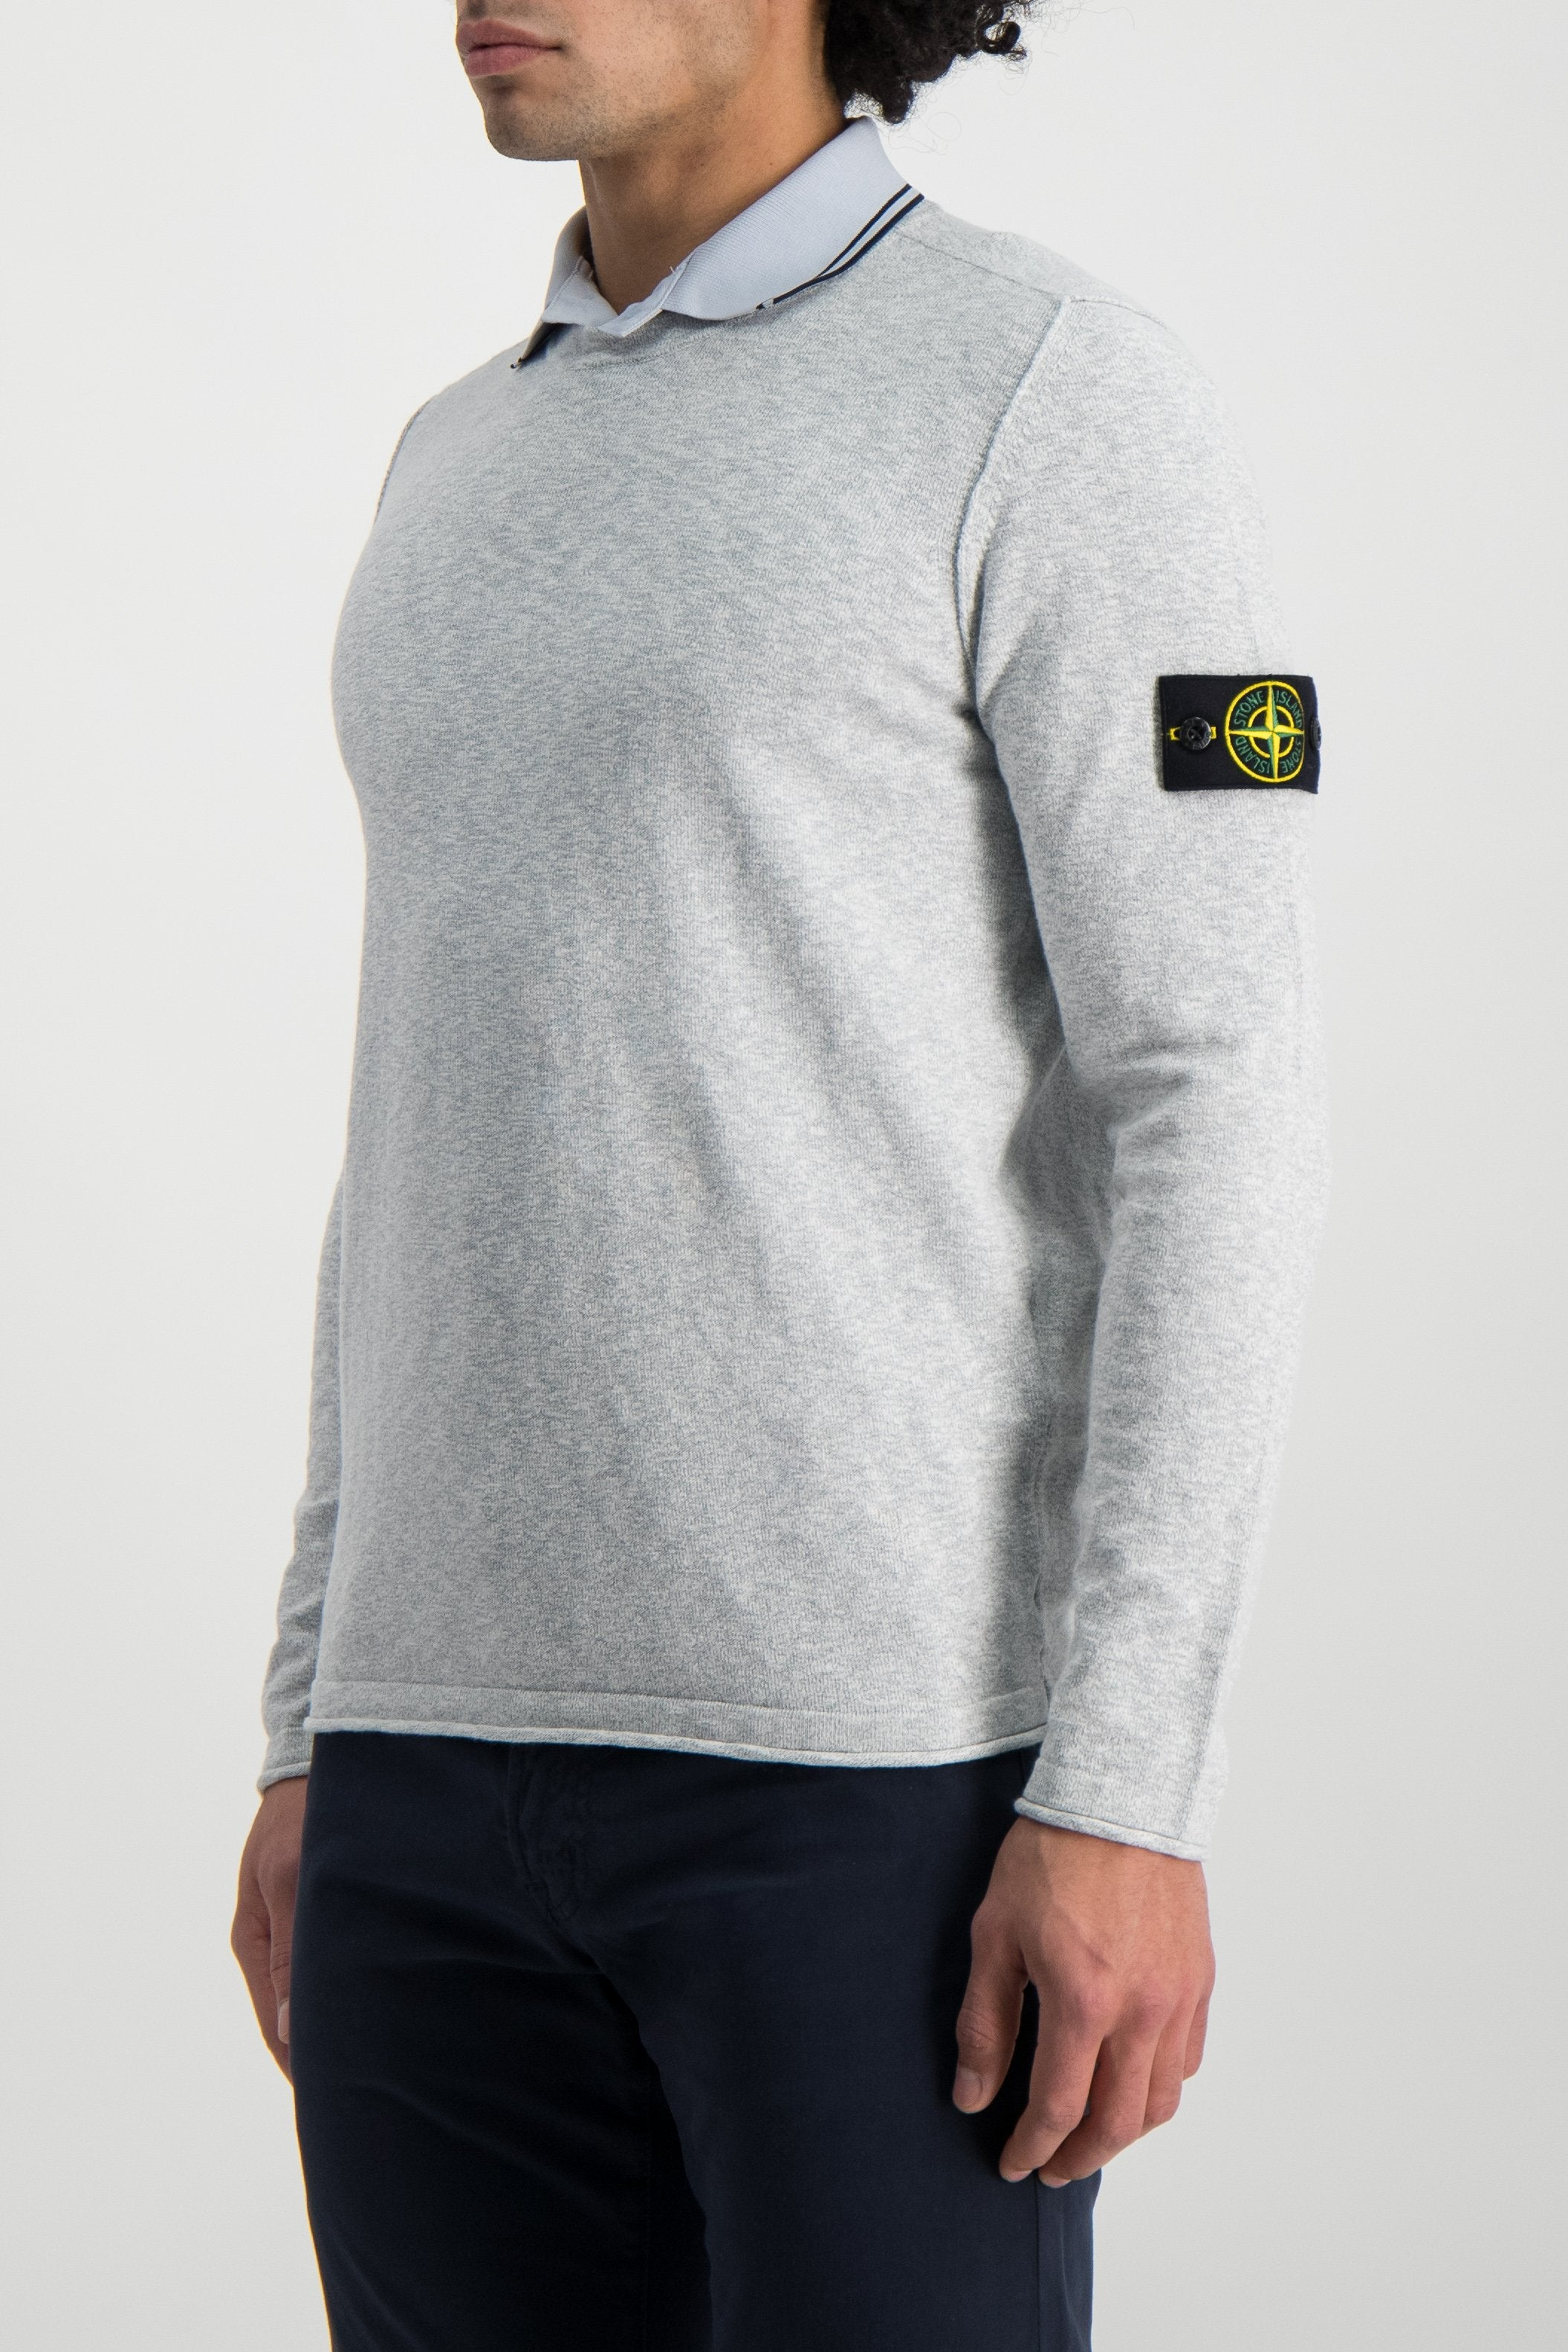 Front Crop Image Of Model Wearing Stone Island Pearl Grey Knit